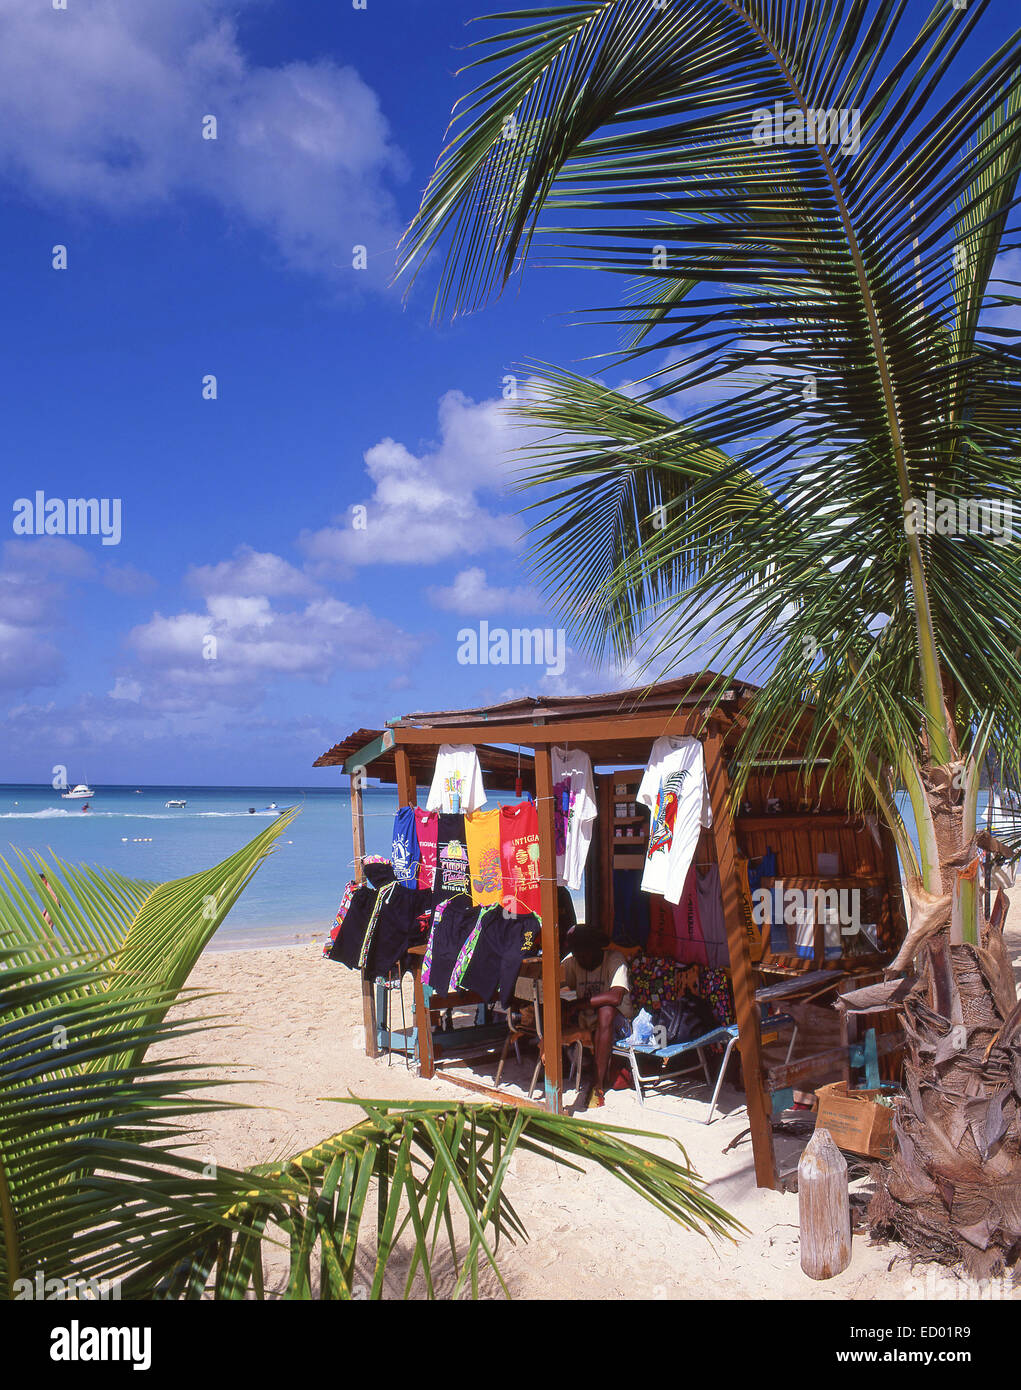 Beach clothing stall, Jolly Beach Resort, Saint Mary's Parish, Antigua, Antigua and Barbuda, Lesser Antilles, Caribbean - Stock Image